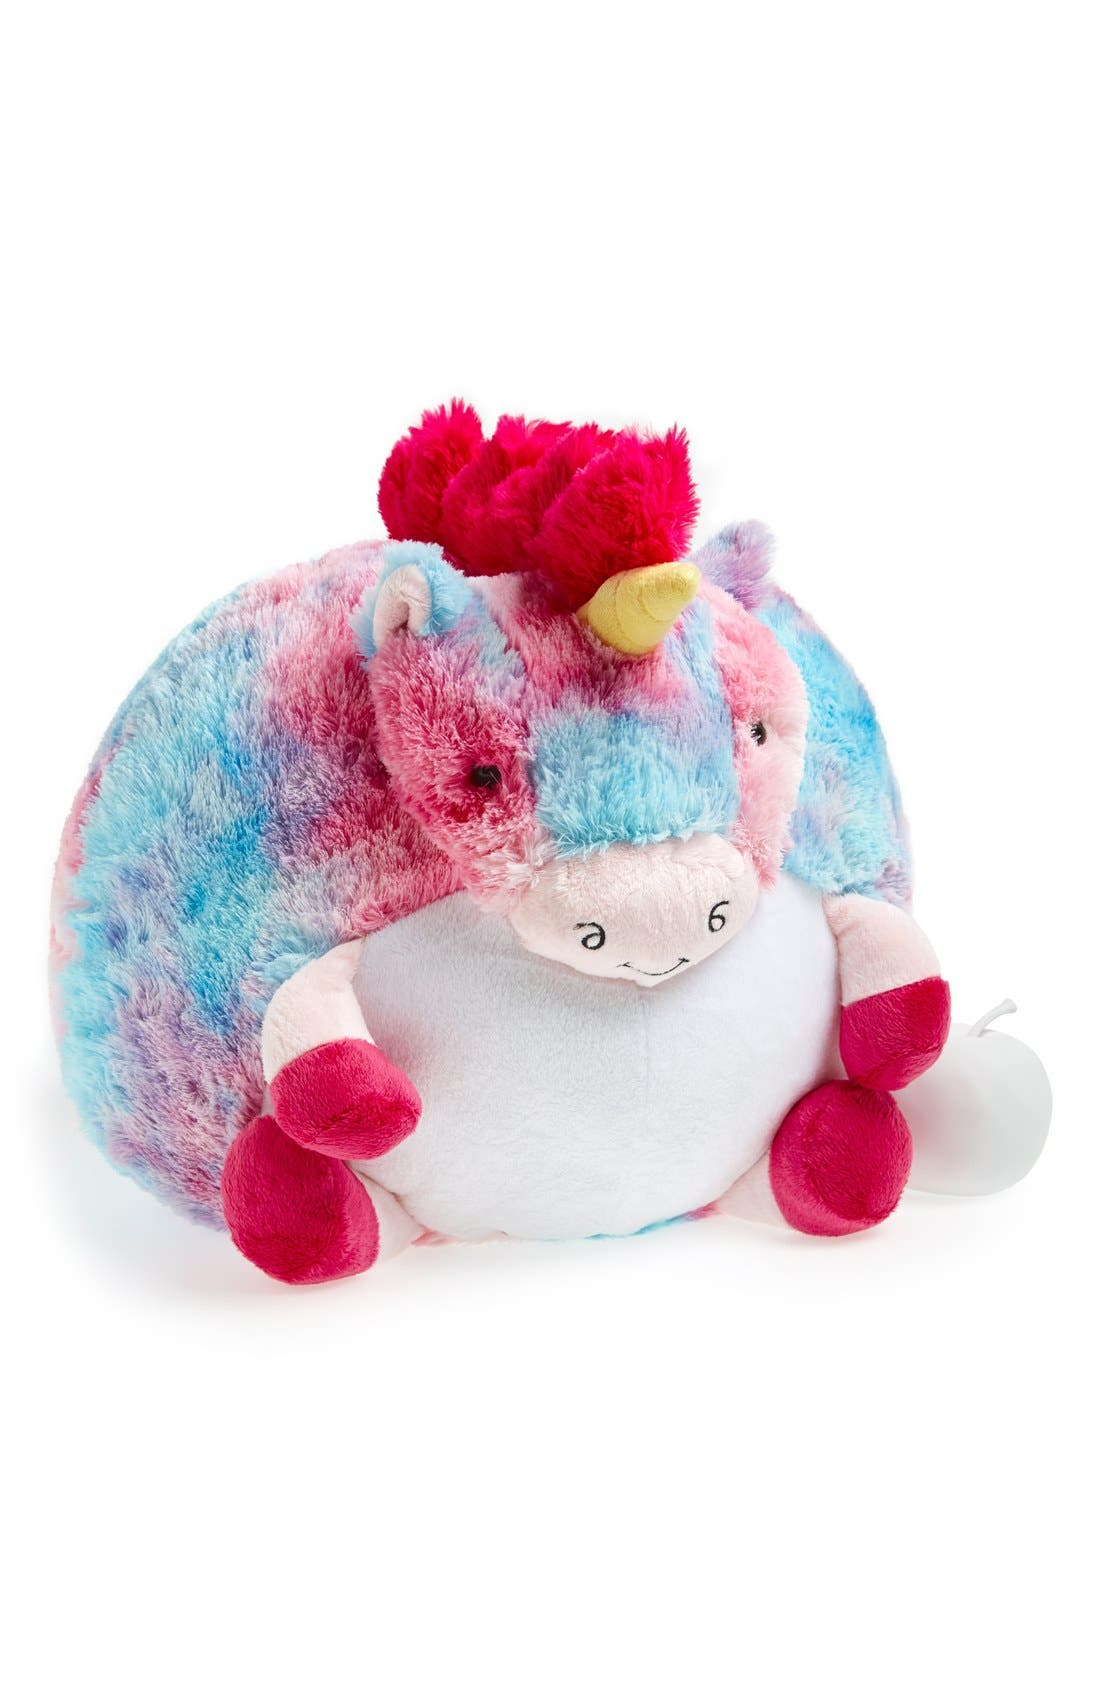 Alternate Image 1 Selected - Squishable 'Unicorn - Prism' Plush Stuffed Animal